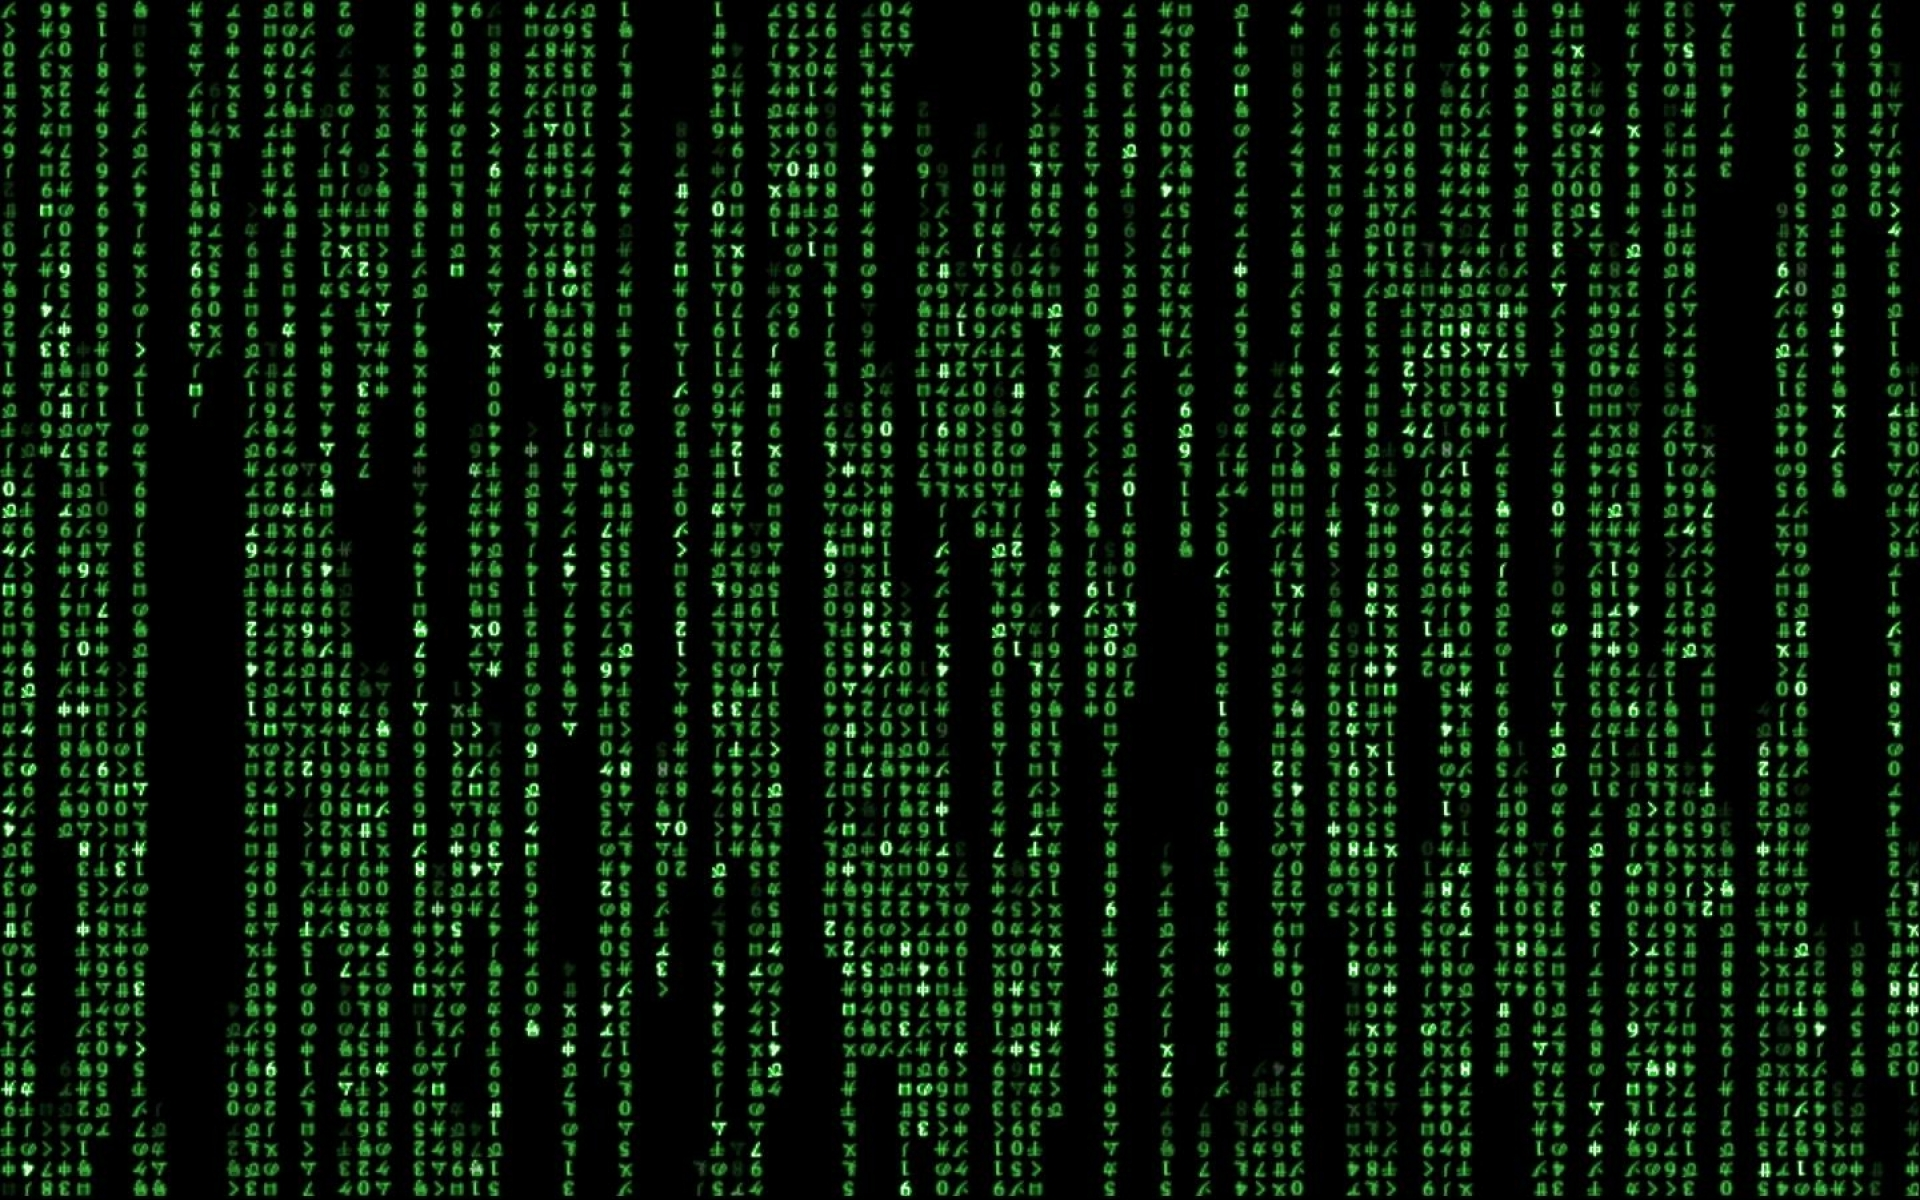 Matrix Animated Wallpaper